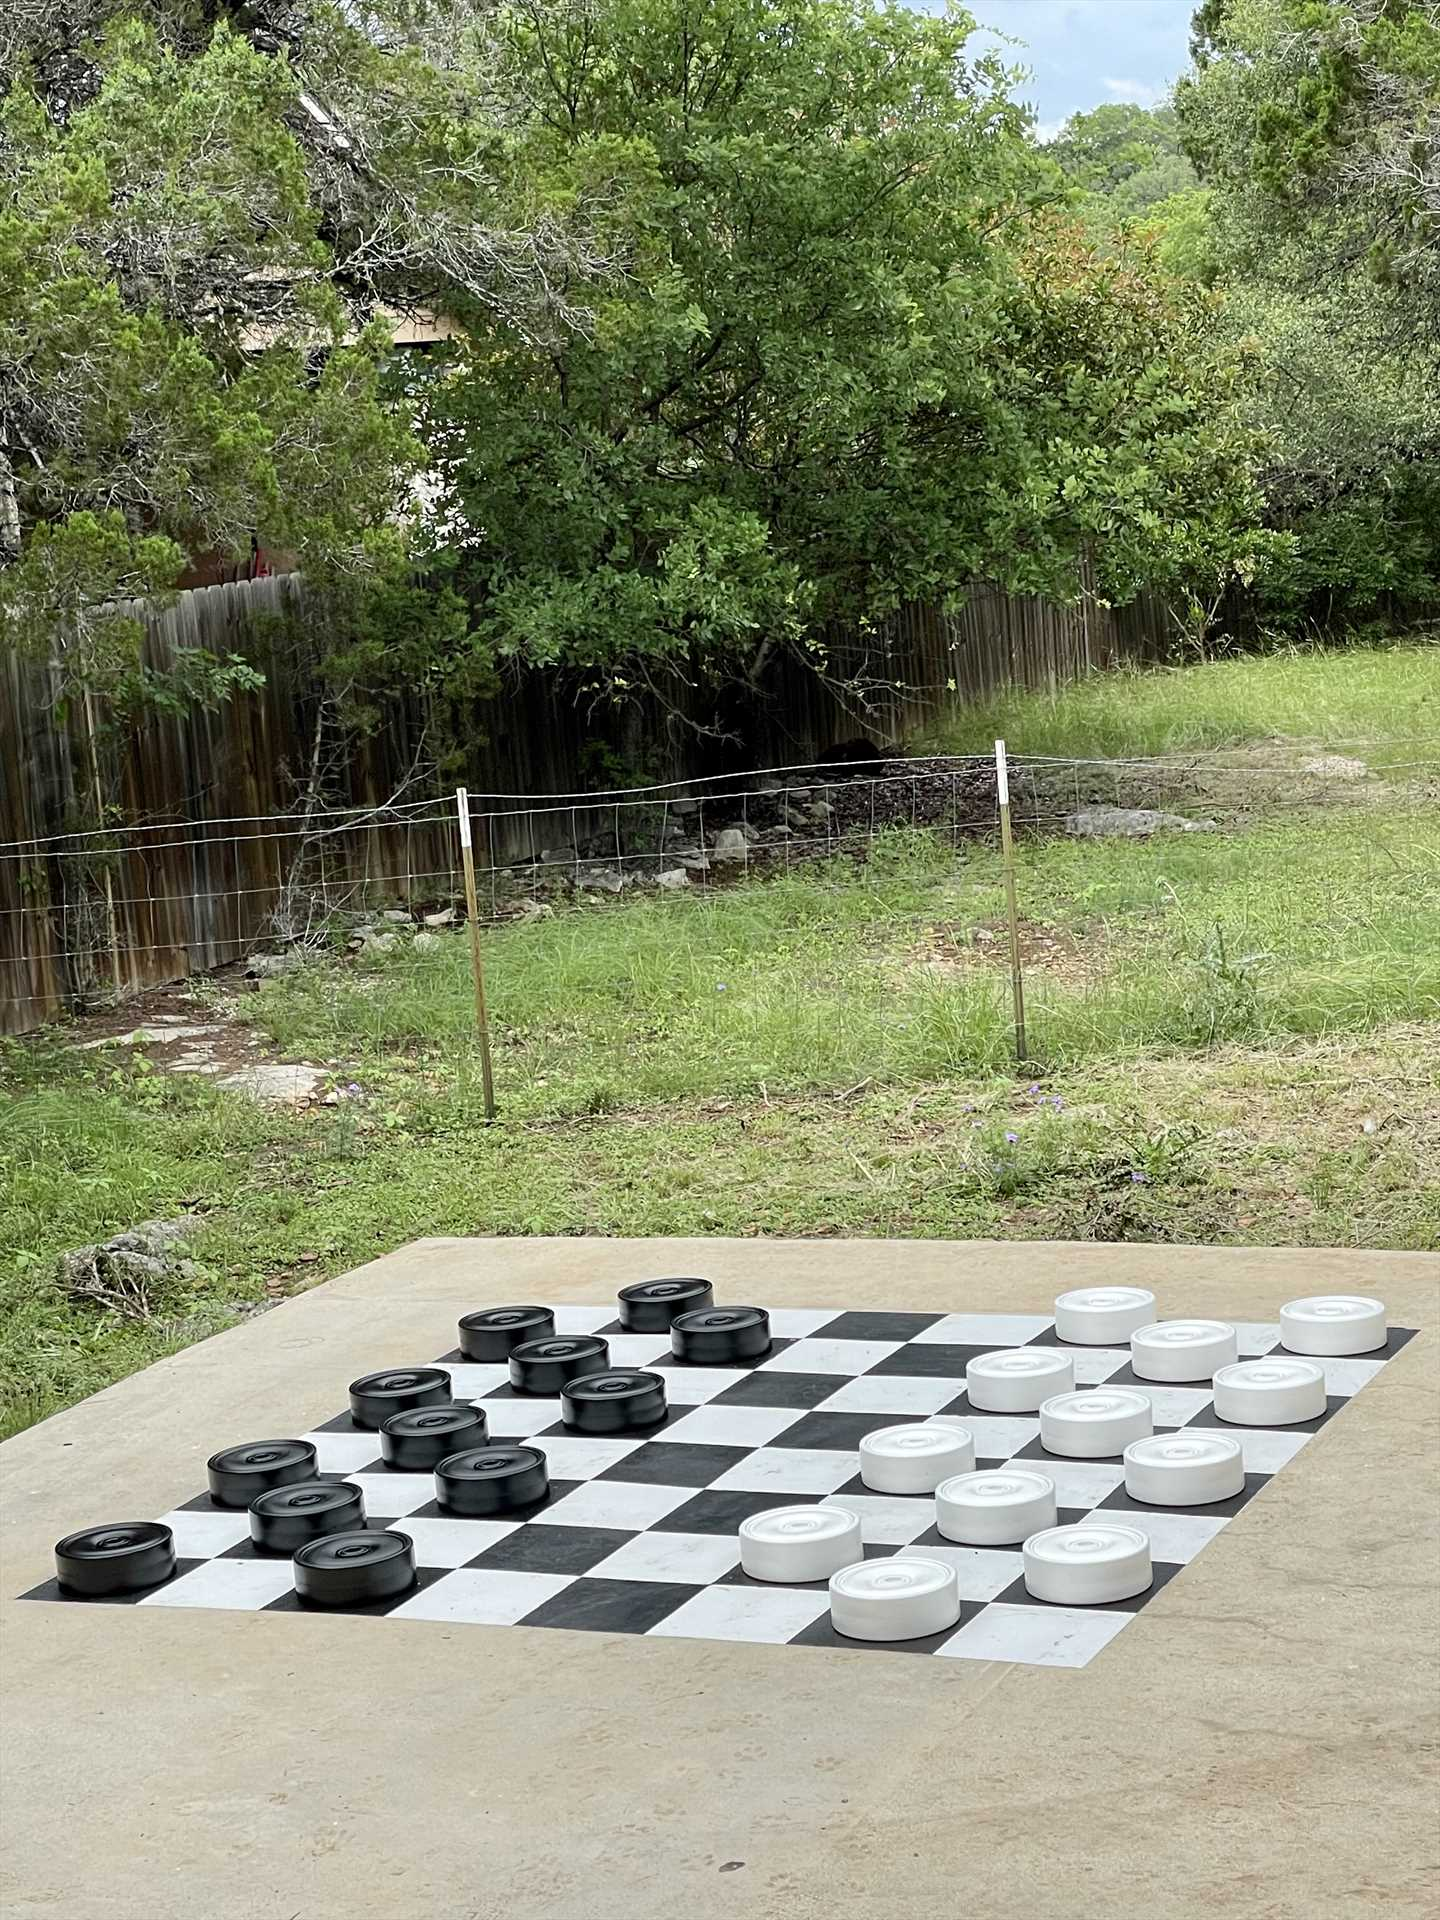 King me! OF course, we do everything big here in Texas, that includes our checkers.